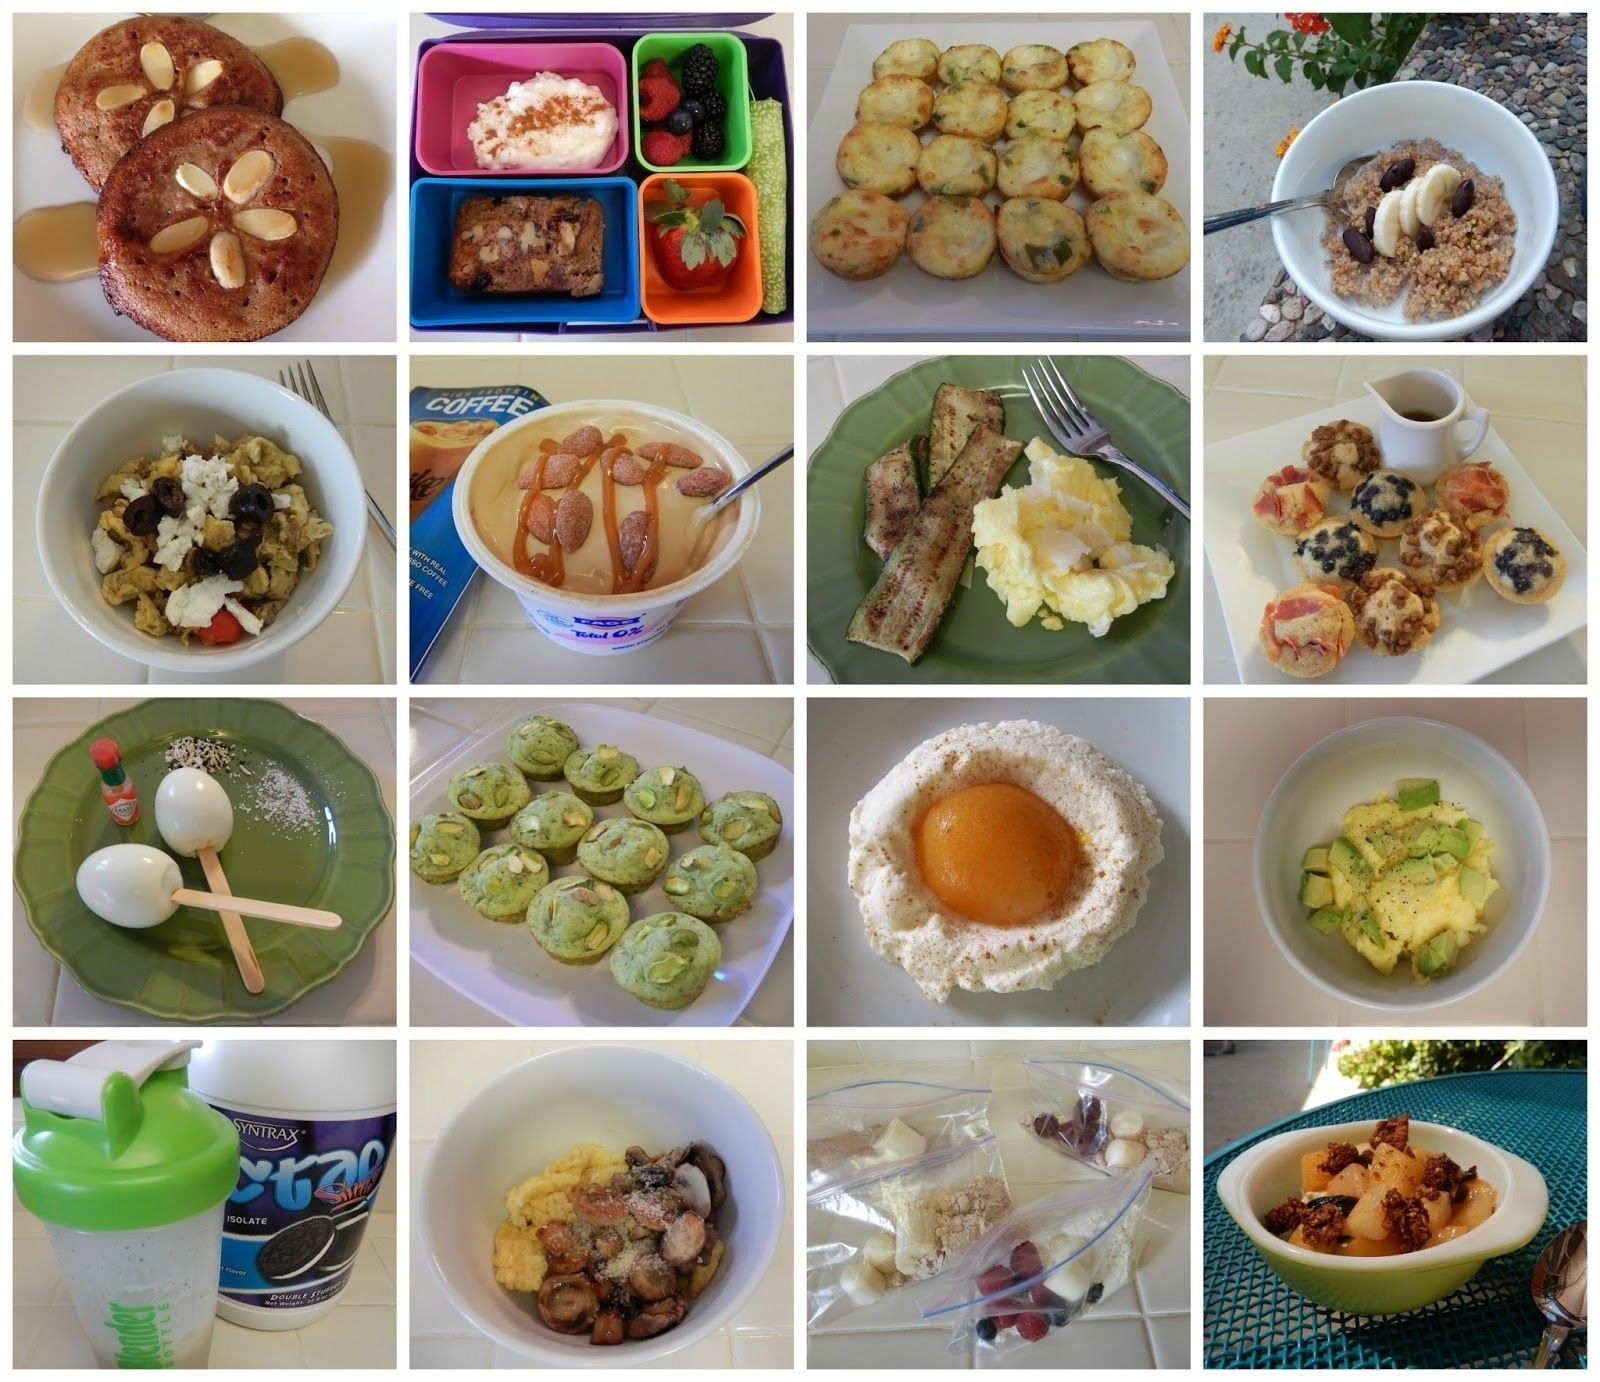 10 Pretty Low Carb Breakfast Ideas On The Go oodles of healthy breakfast ideas post wls breakfasts pinterest 7 2020